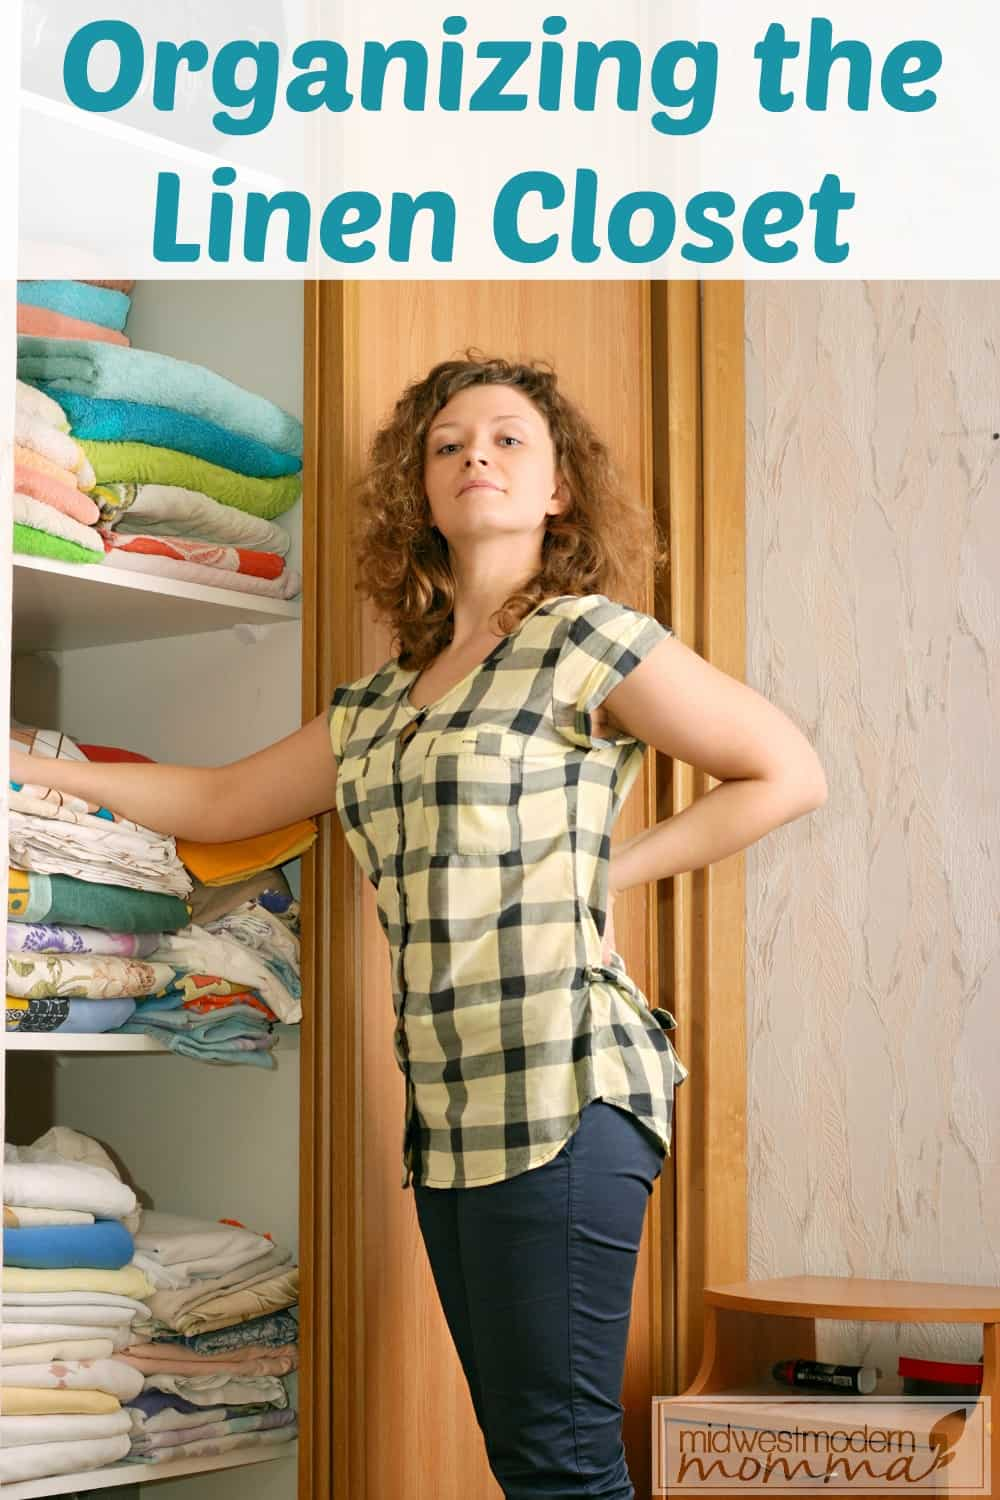 Tips for Organizing the Linen Closet